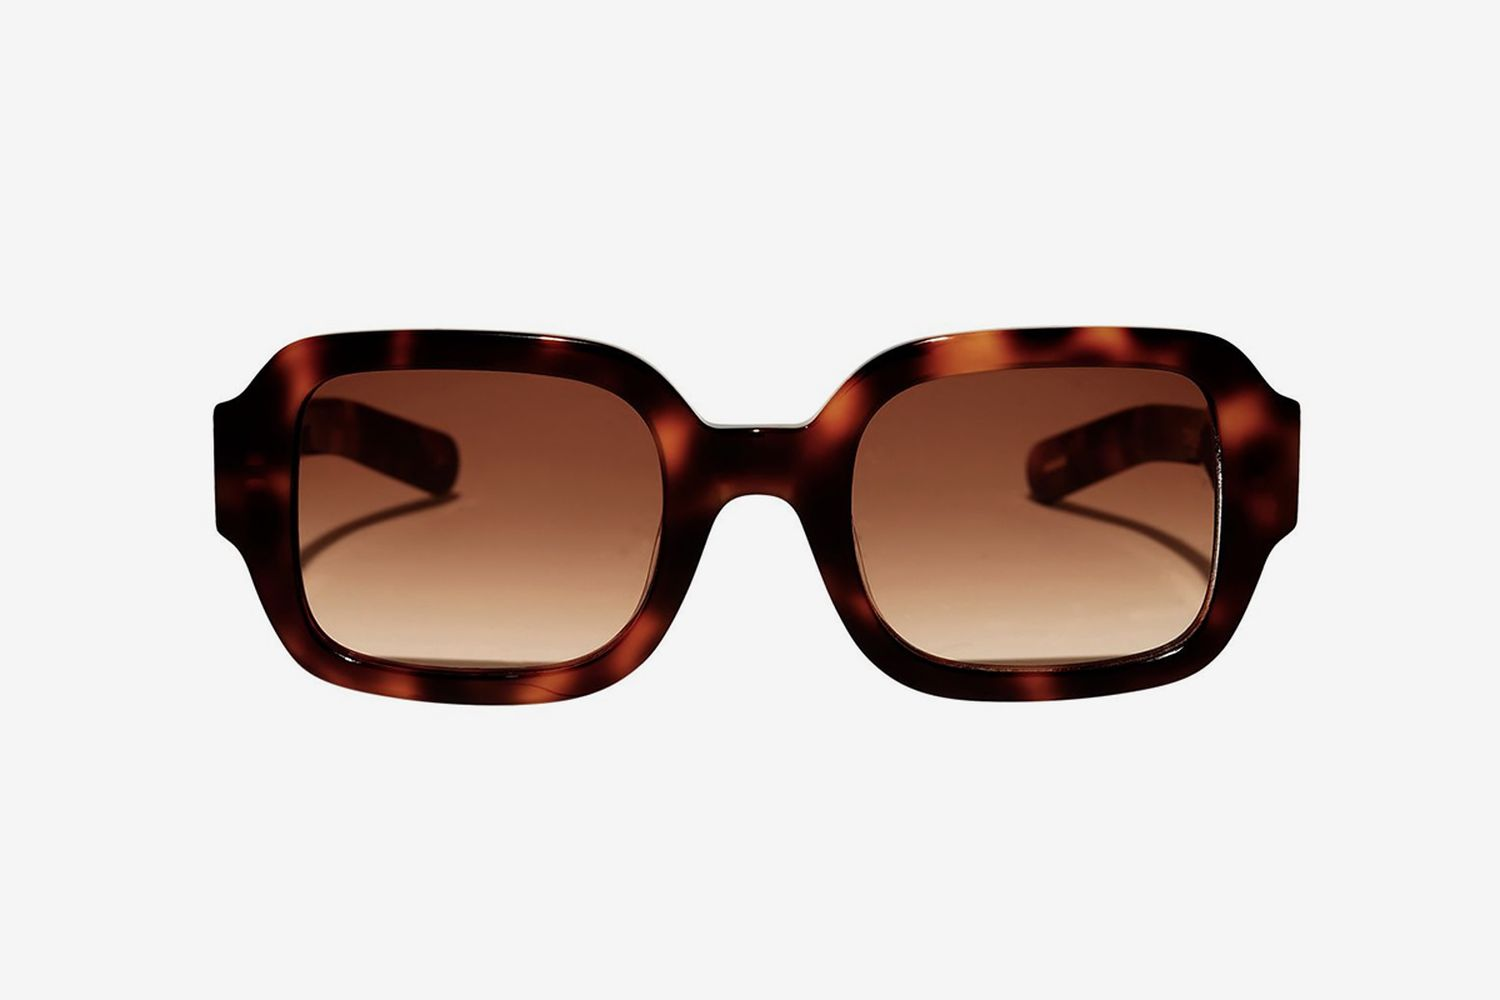 Tishkoff Acetate Sunglasses